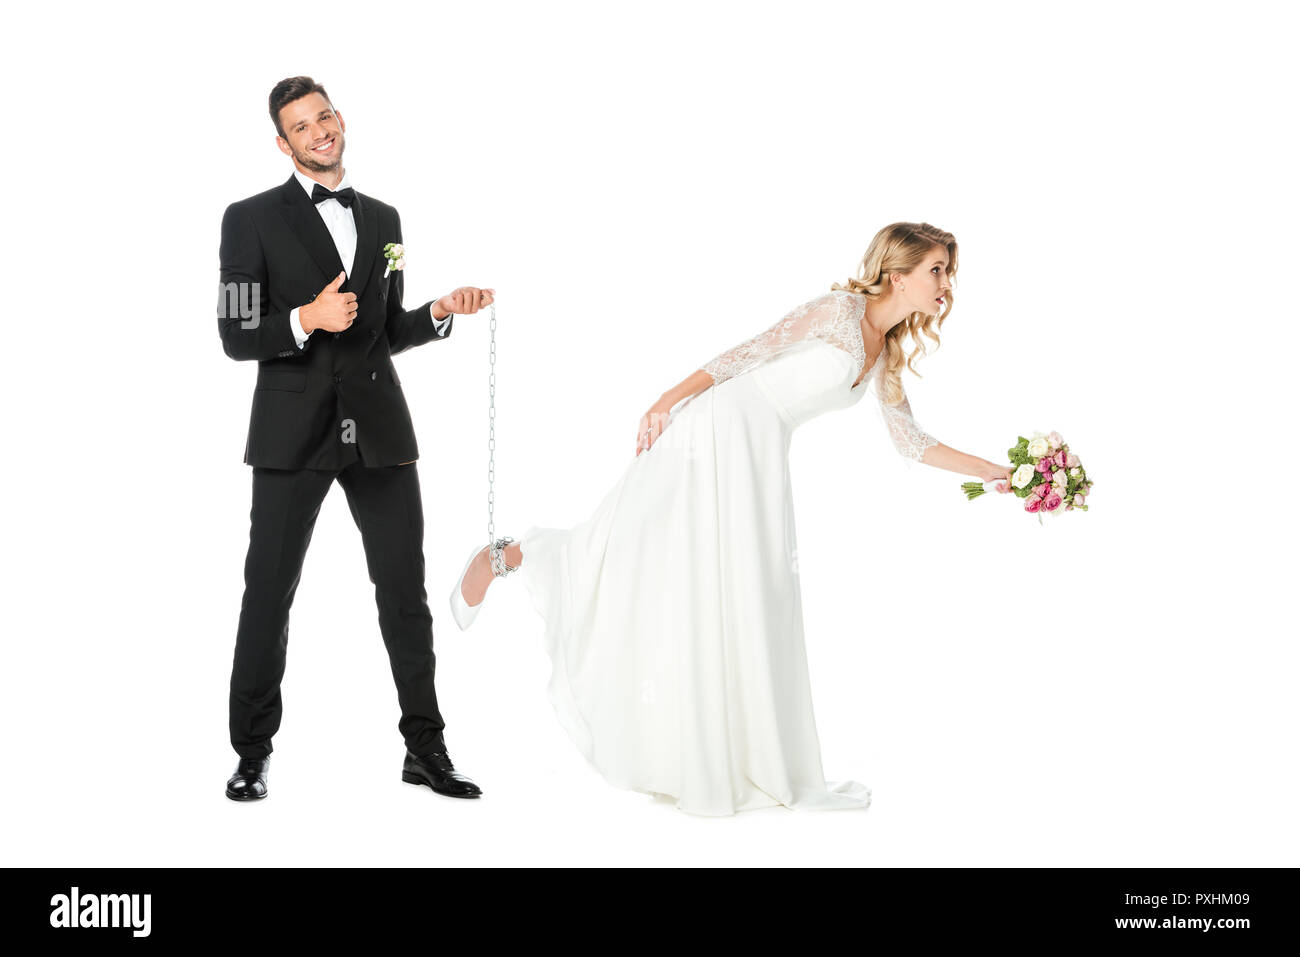 happy groom holding chain tied around brides leg and showing thumb up isolated on white - Stock Image